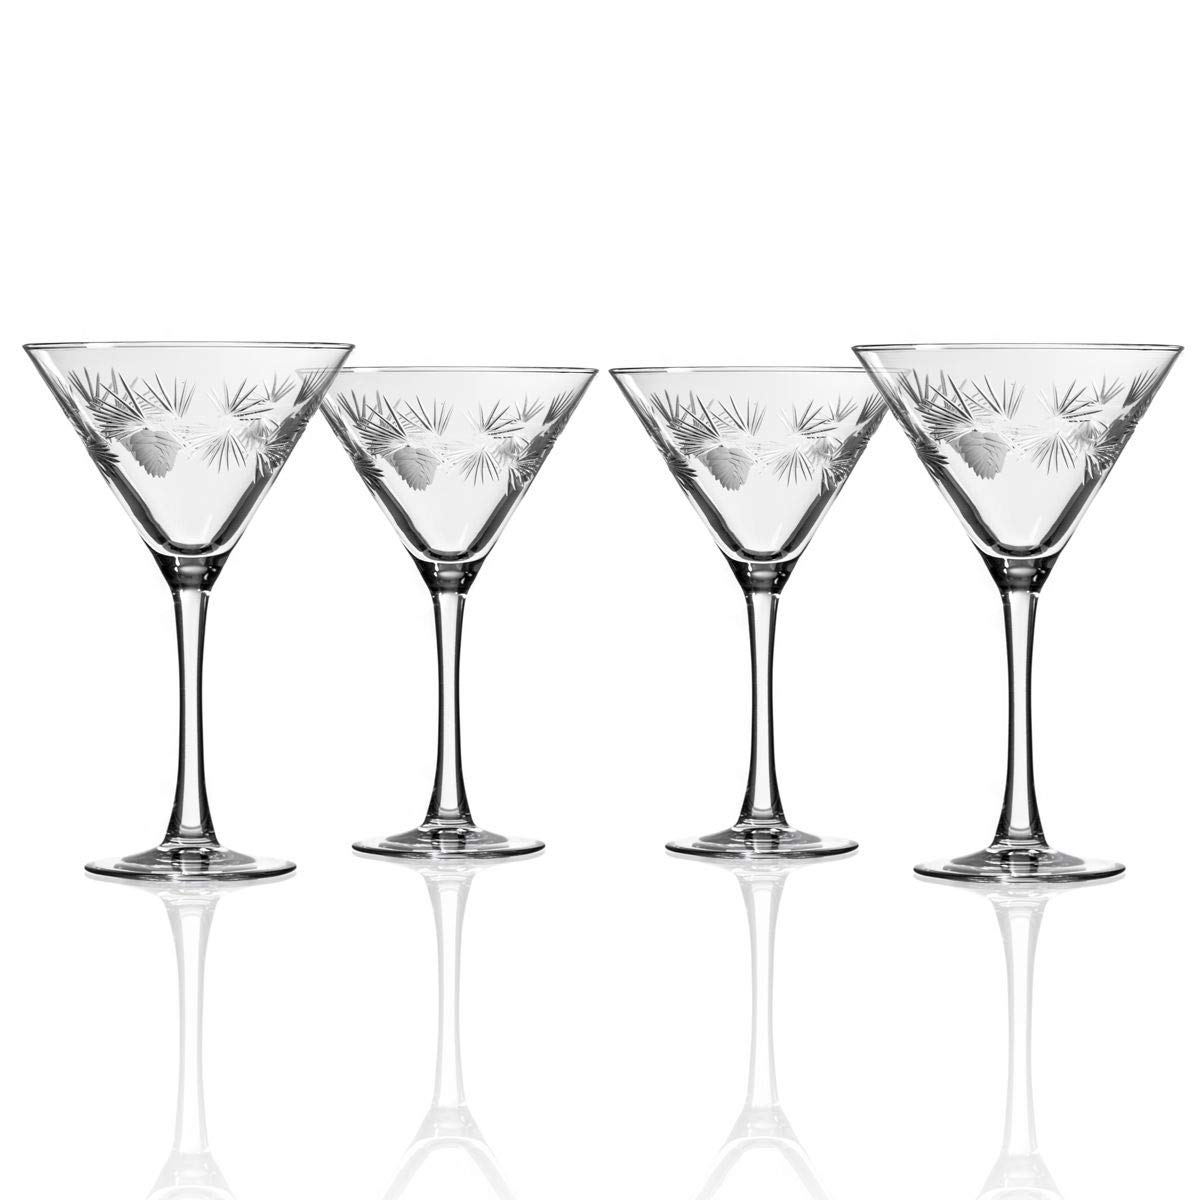 Rolf Glass Icy Pine Martini Glass 10oz, Set of 4 Glasses by Rolf Glass